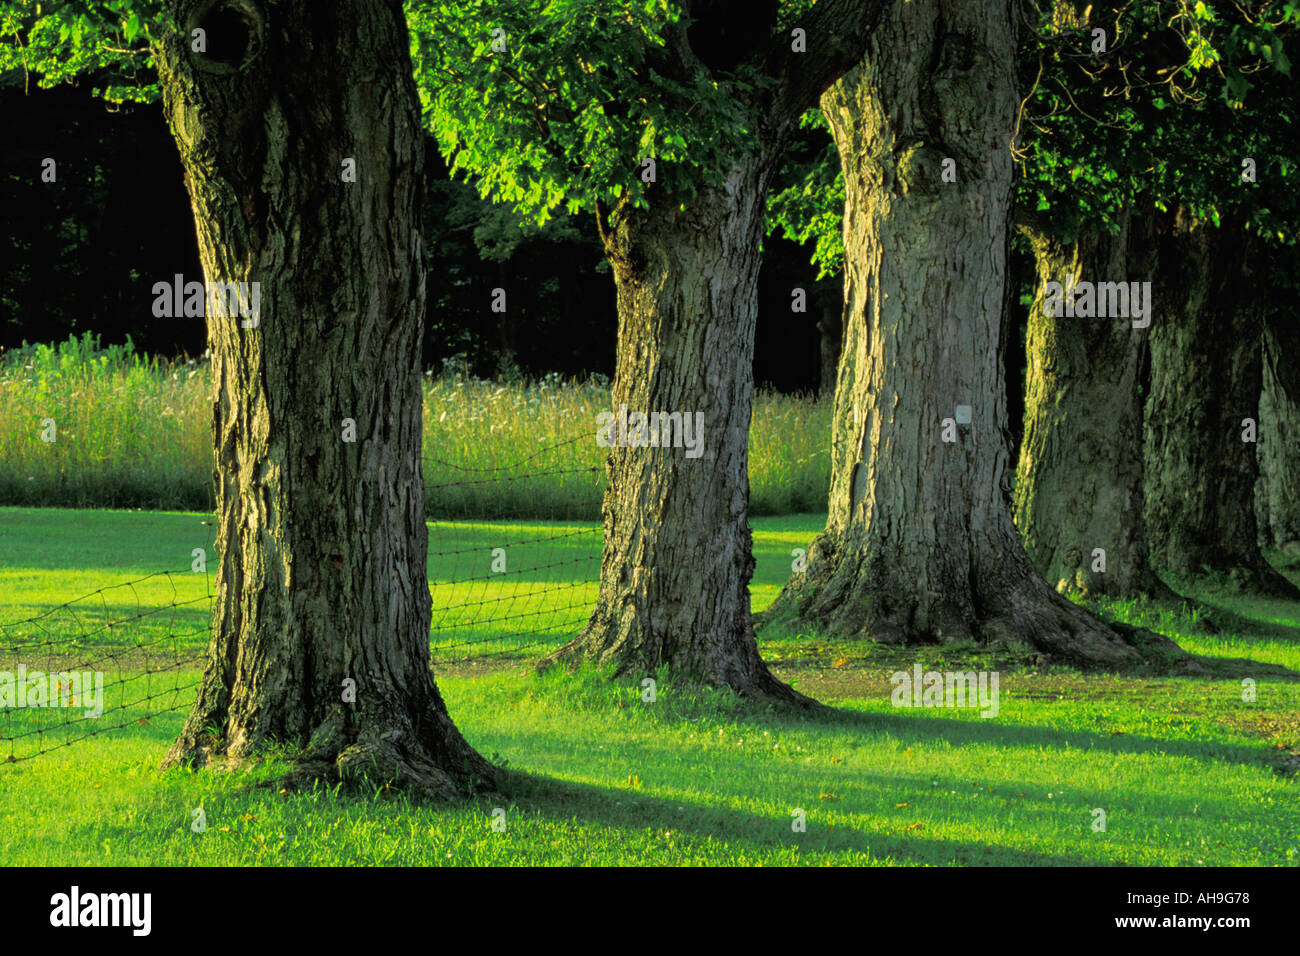 Oak Trees lined up on a rural road in Ohio - Stock Image